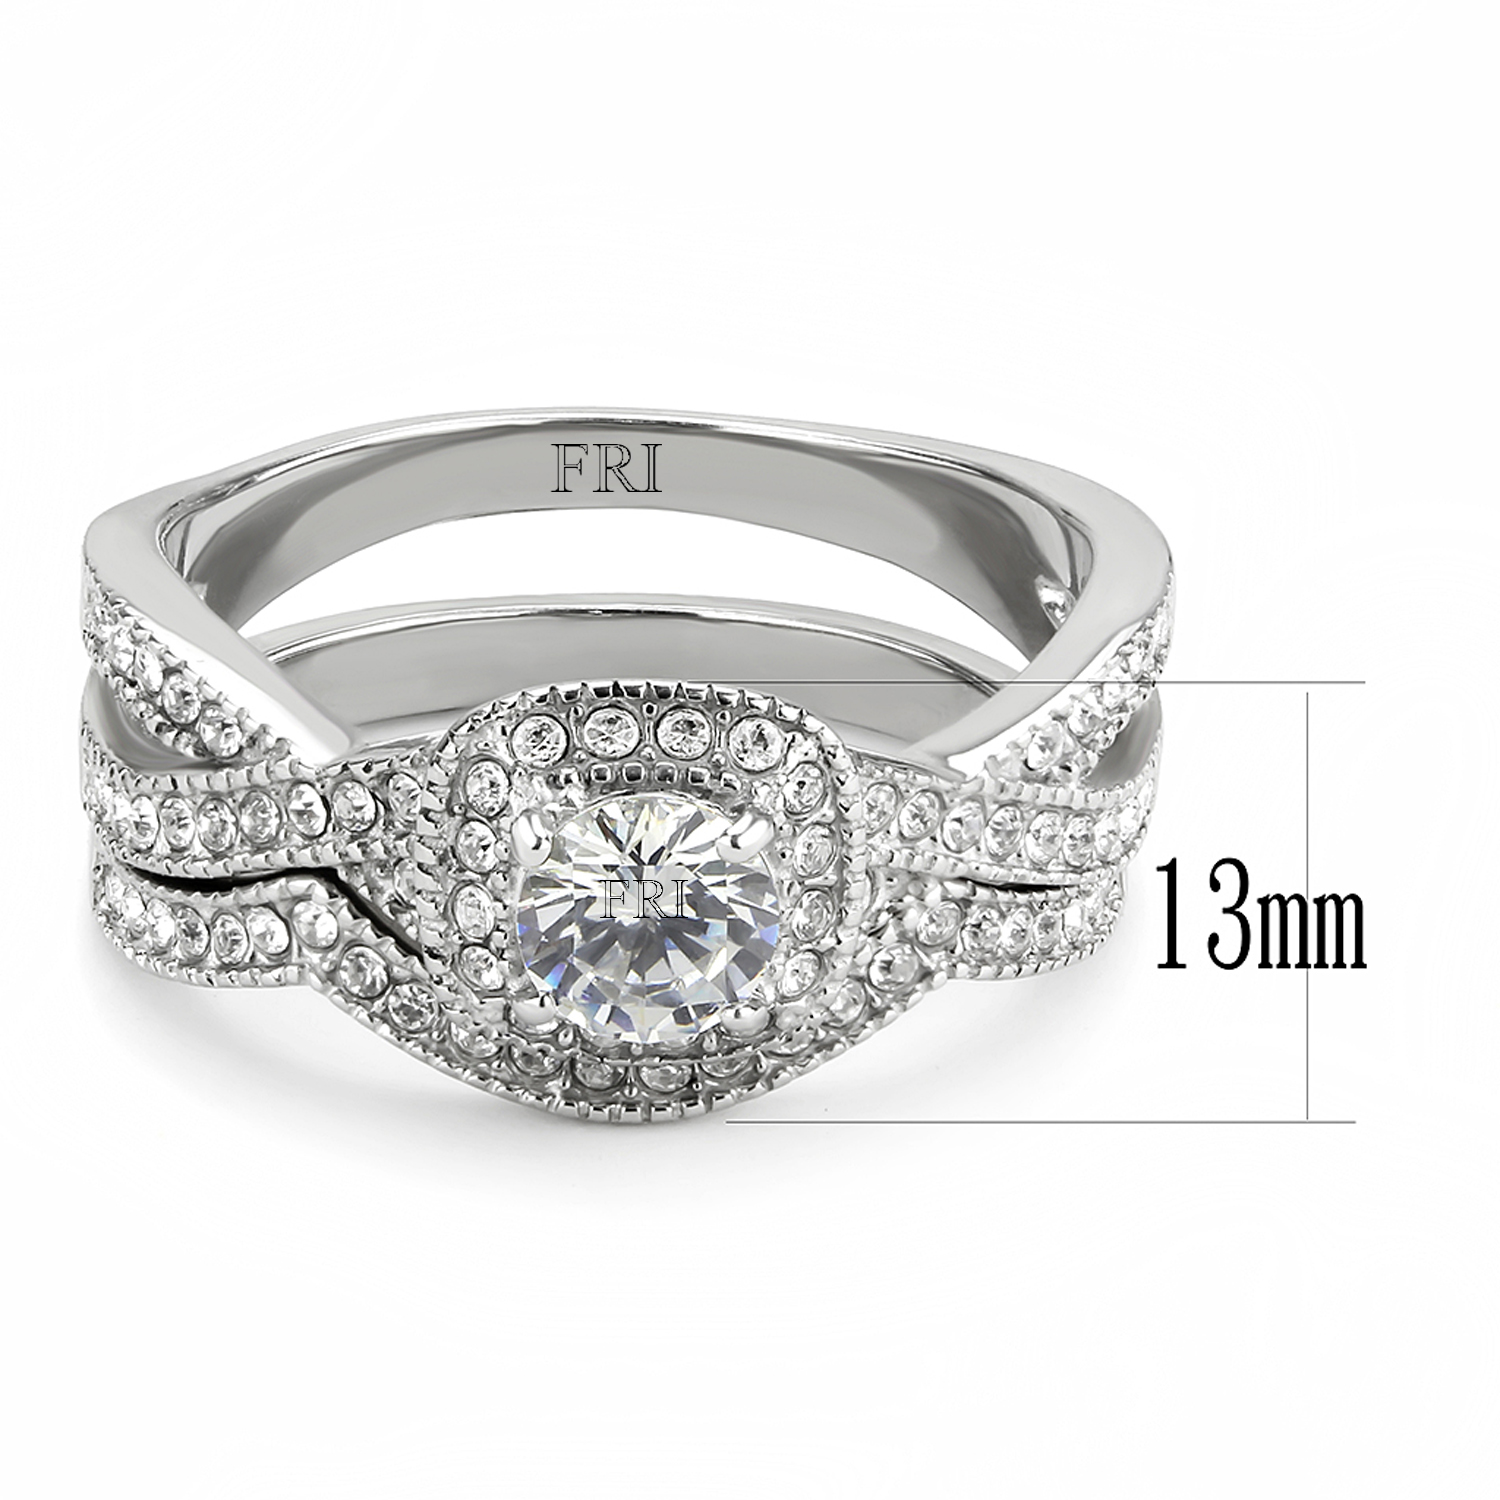 Stainless-Steel-Women-039-s-Infinity-Wedding-Ring-Set-Halo-Round-Cut-Cubic-Zirconia thumbnail 12